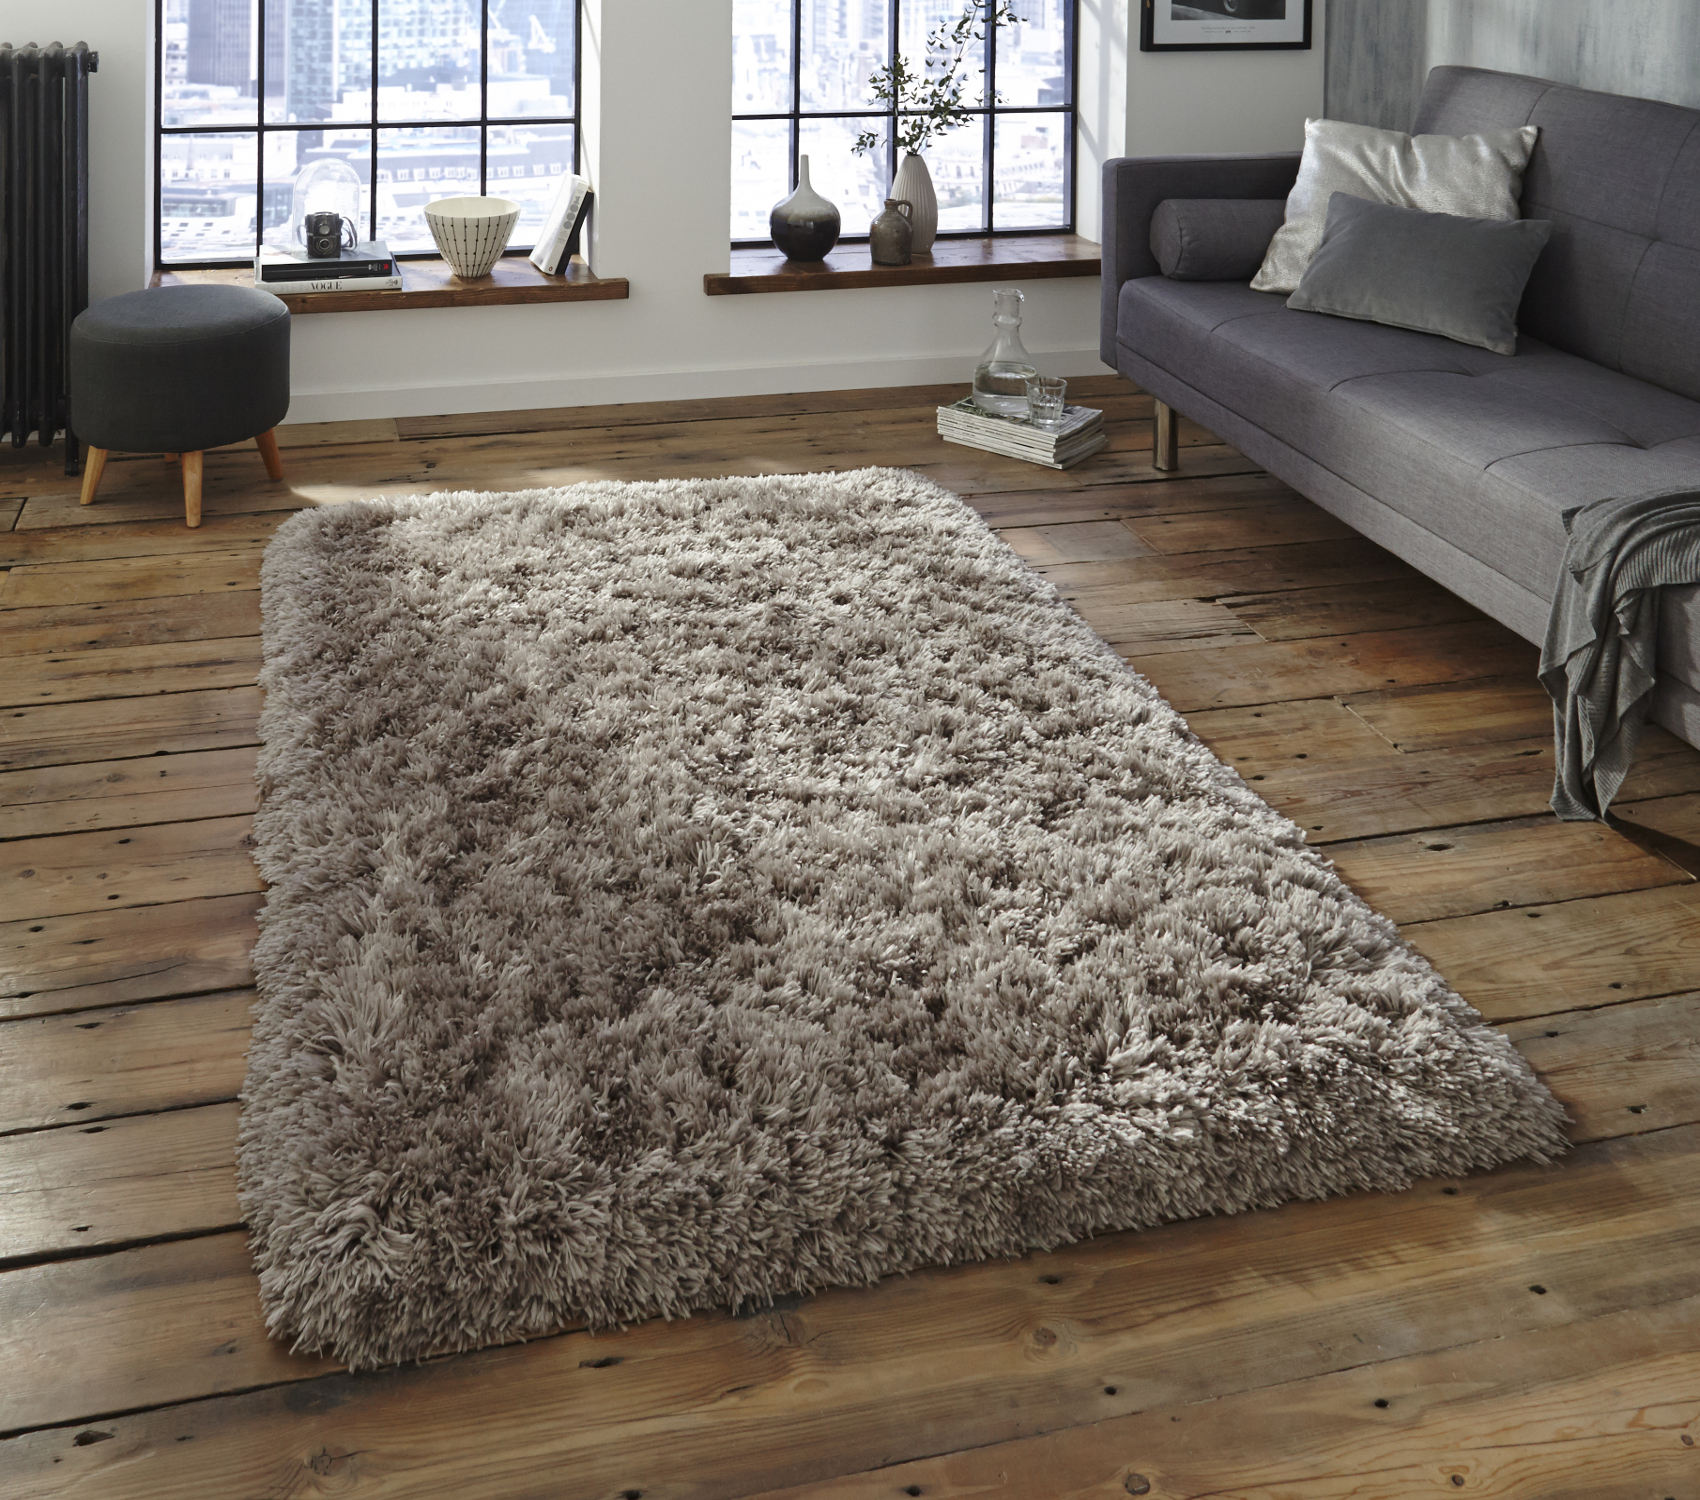 shaggy rugs grey thick shaggy 8.5cm pile rug luxurious hand tufted 100% acrylic polar UGEIUUQ